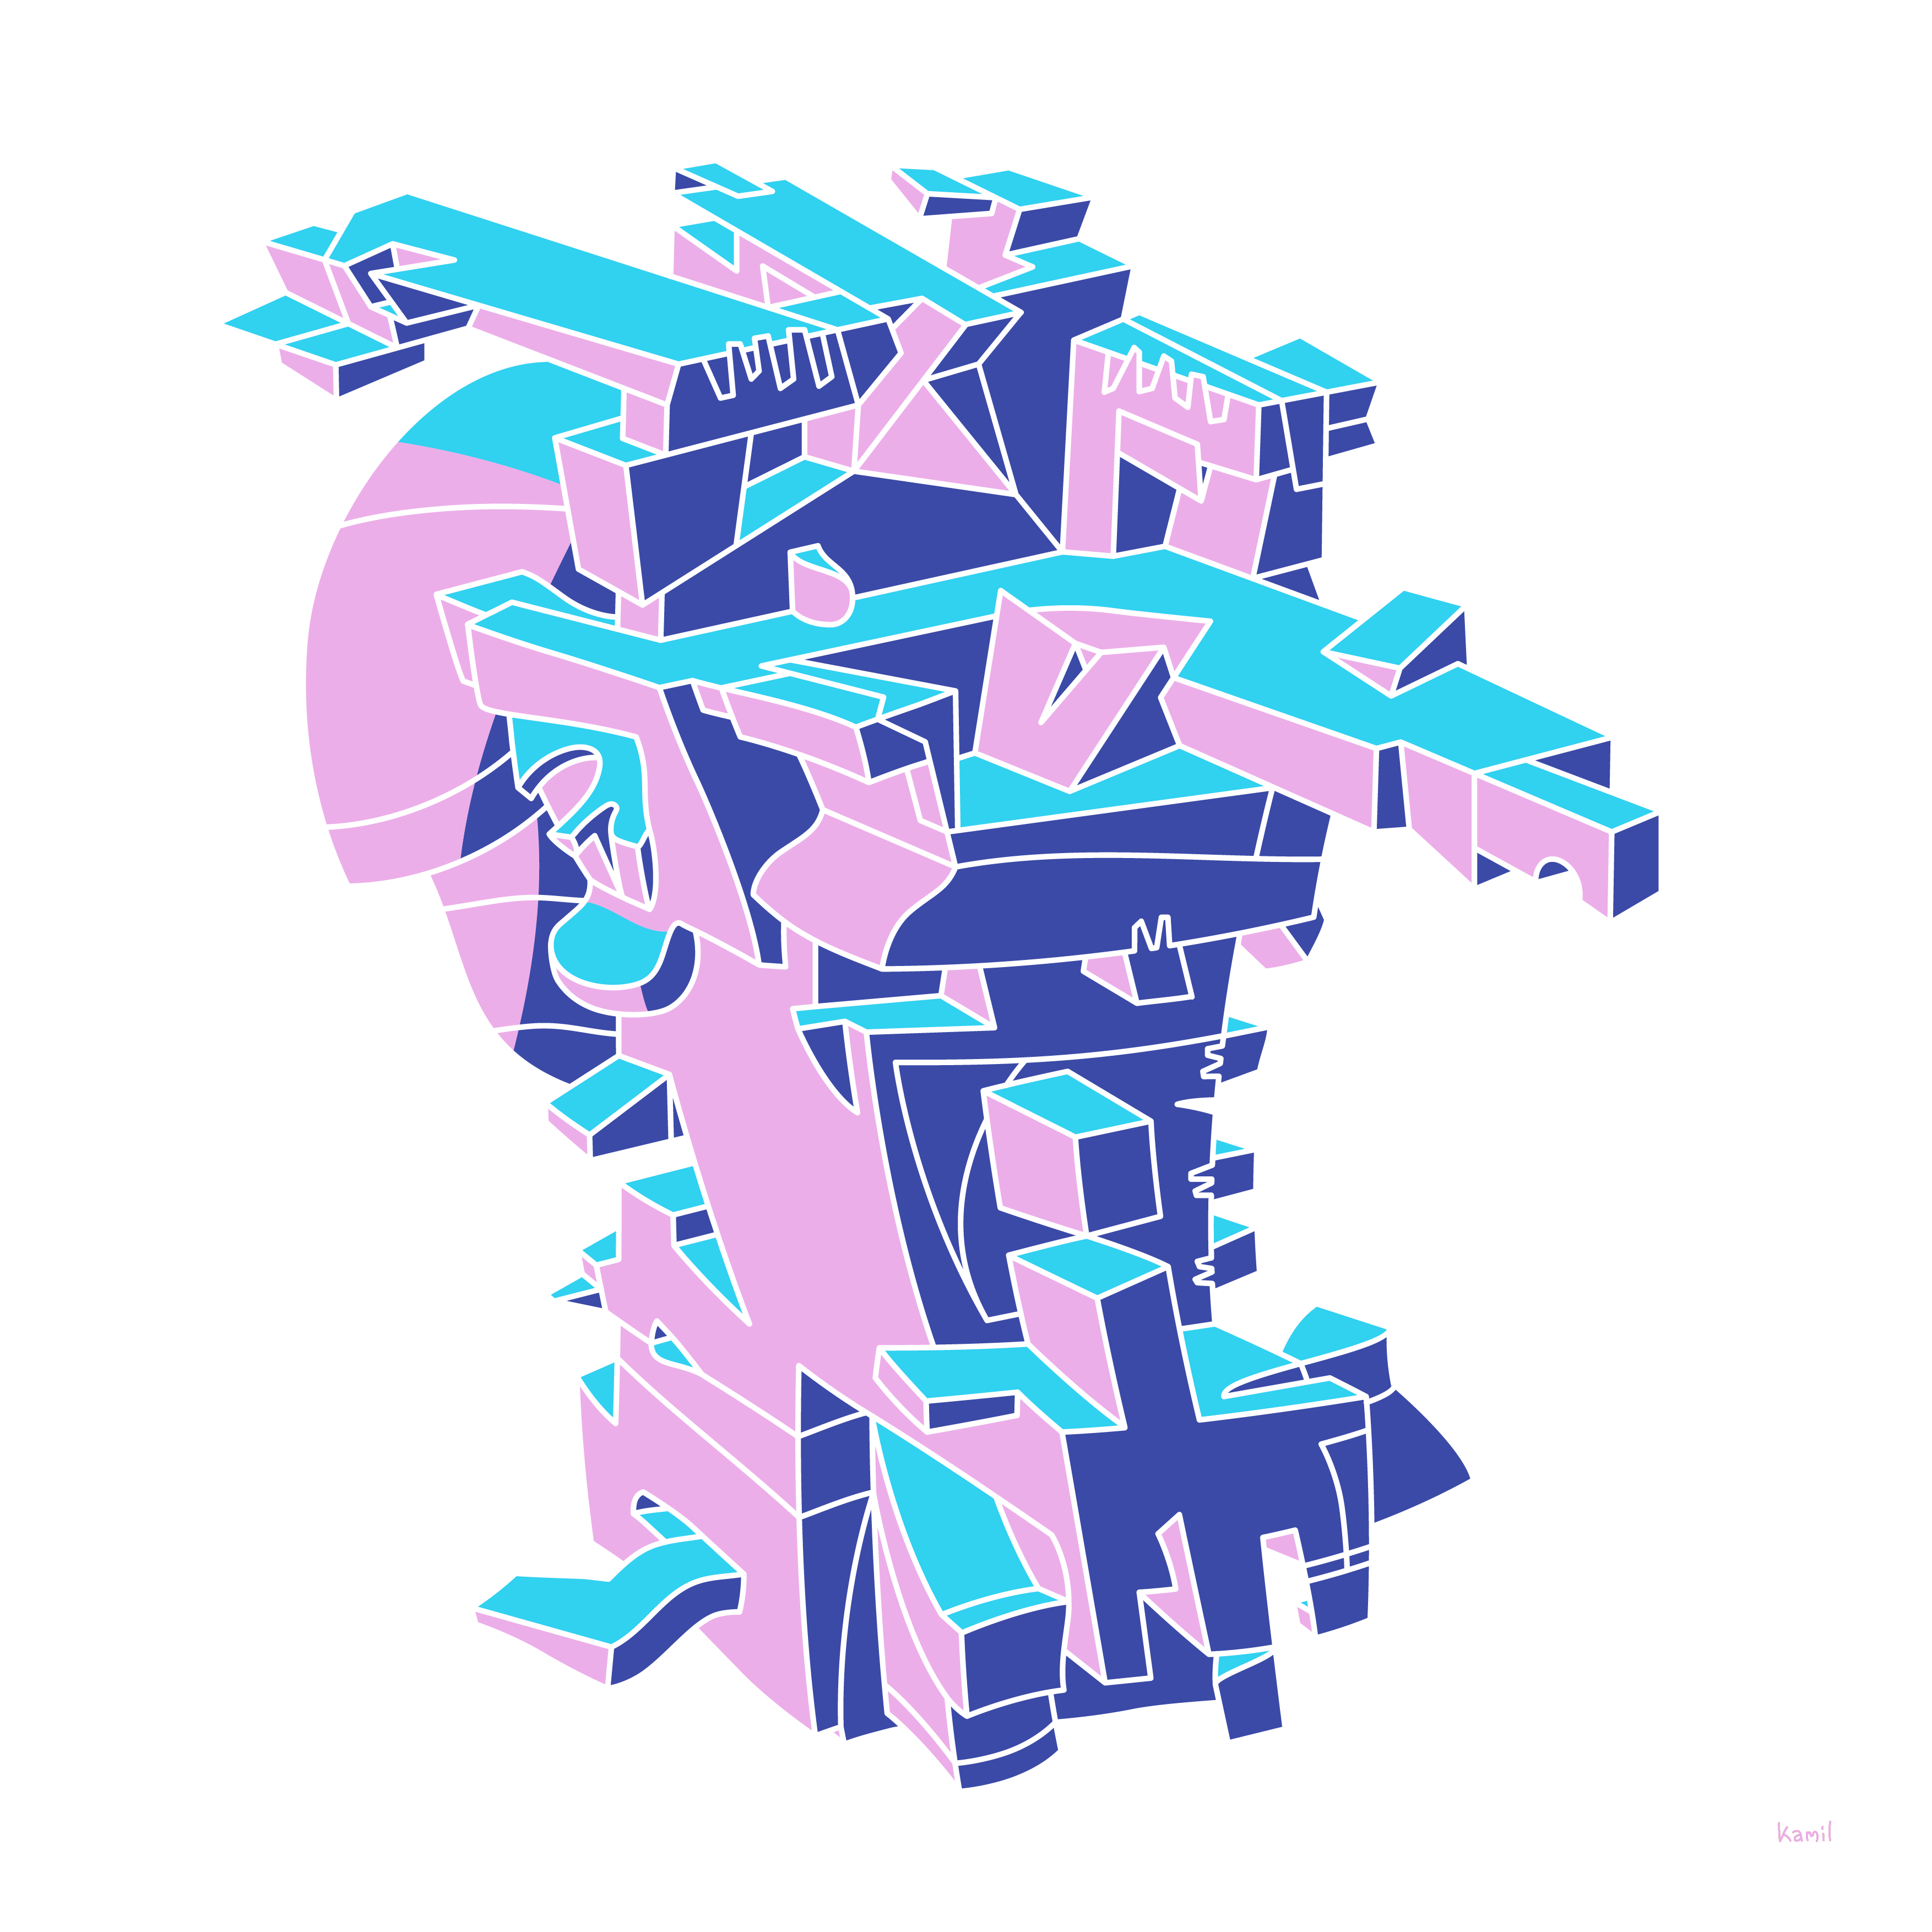 Illustration – Spatial Shapes – No 06 – (pinkblue version)